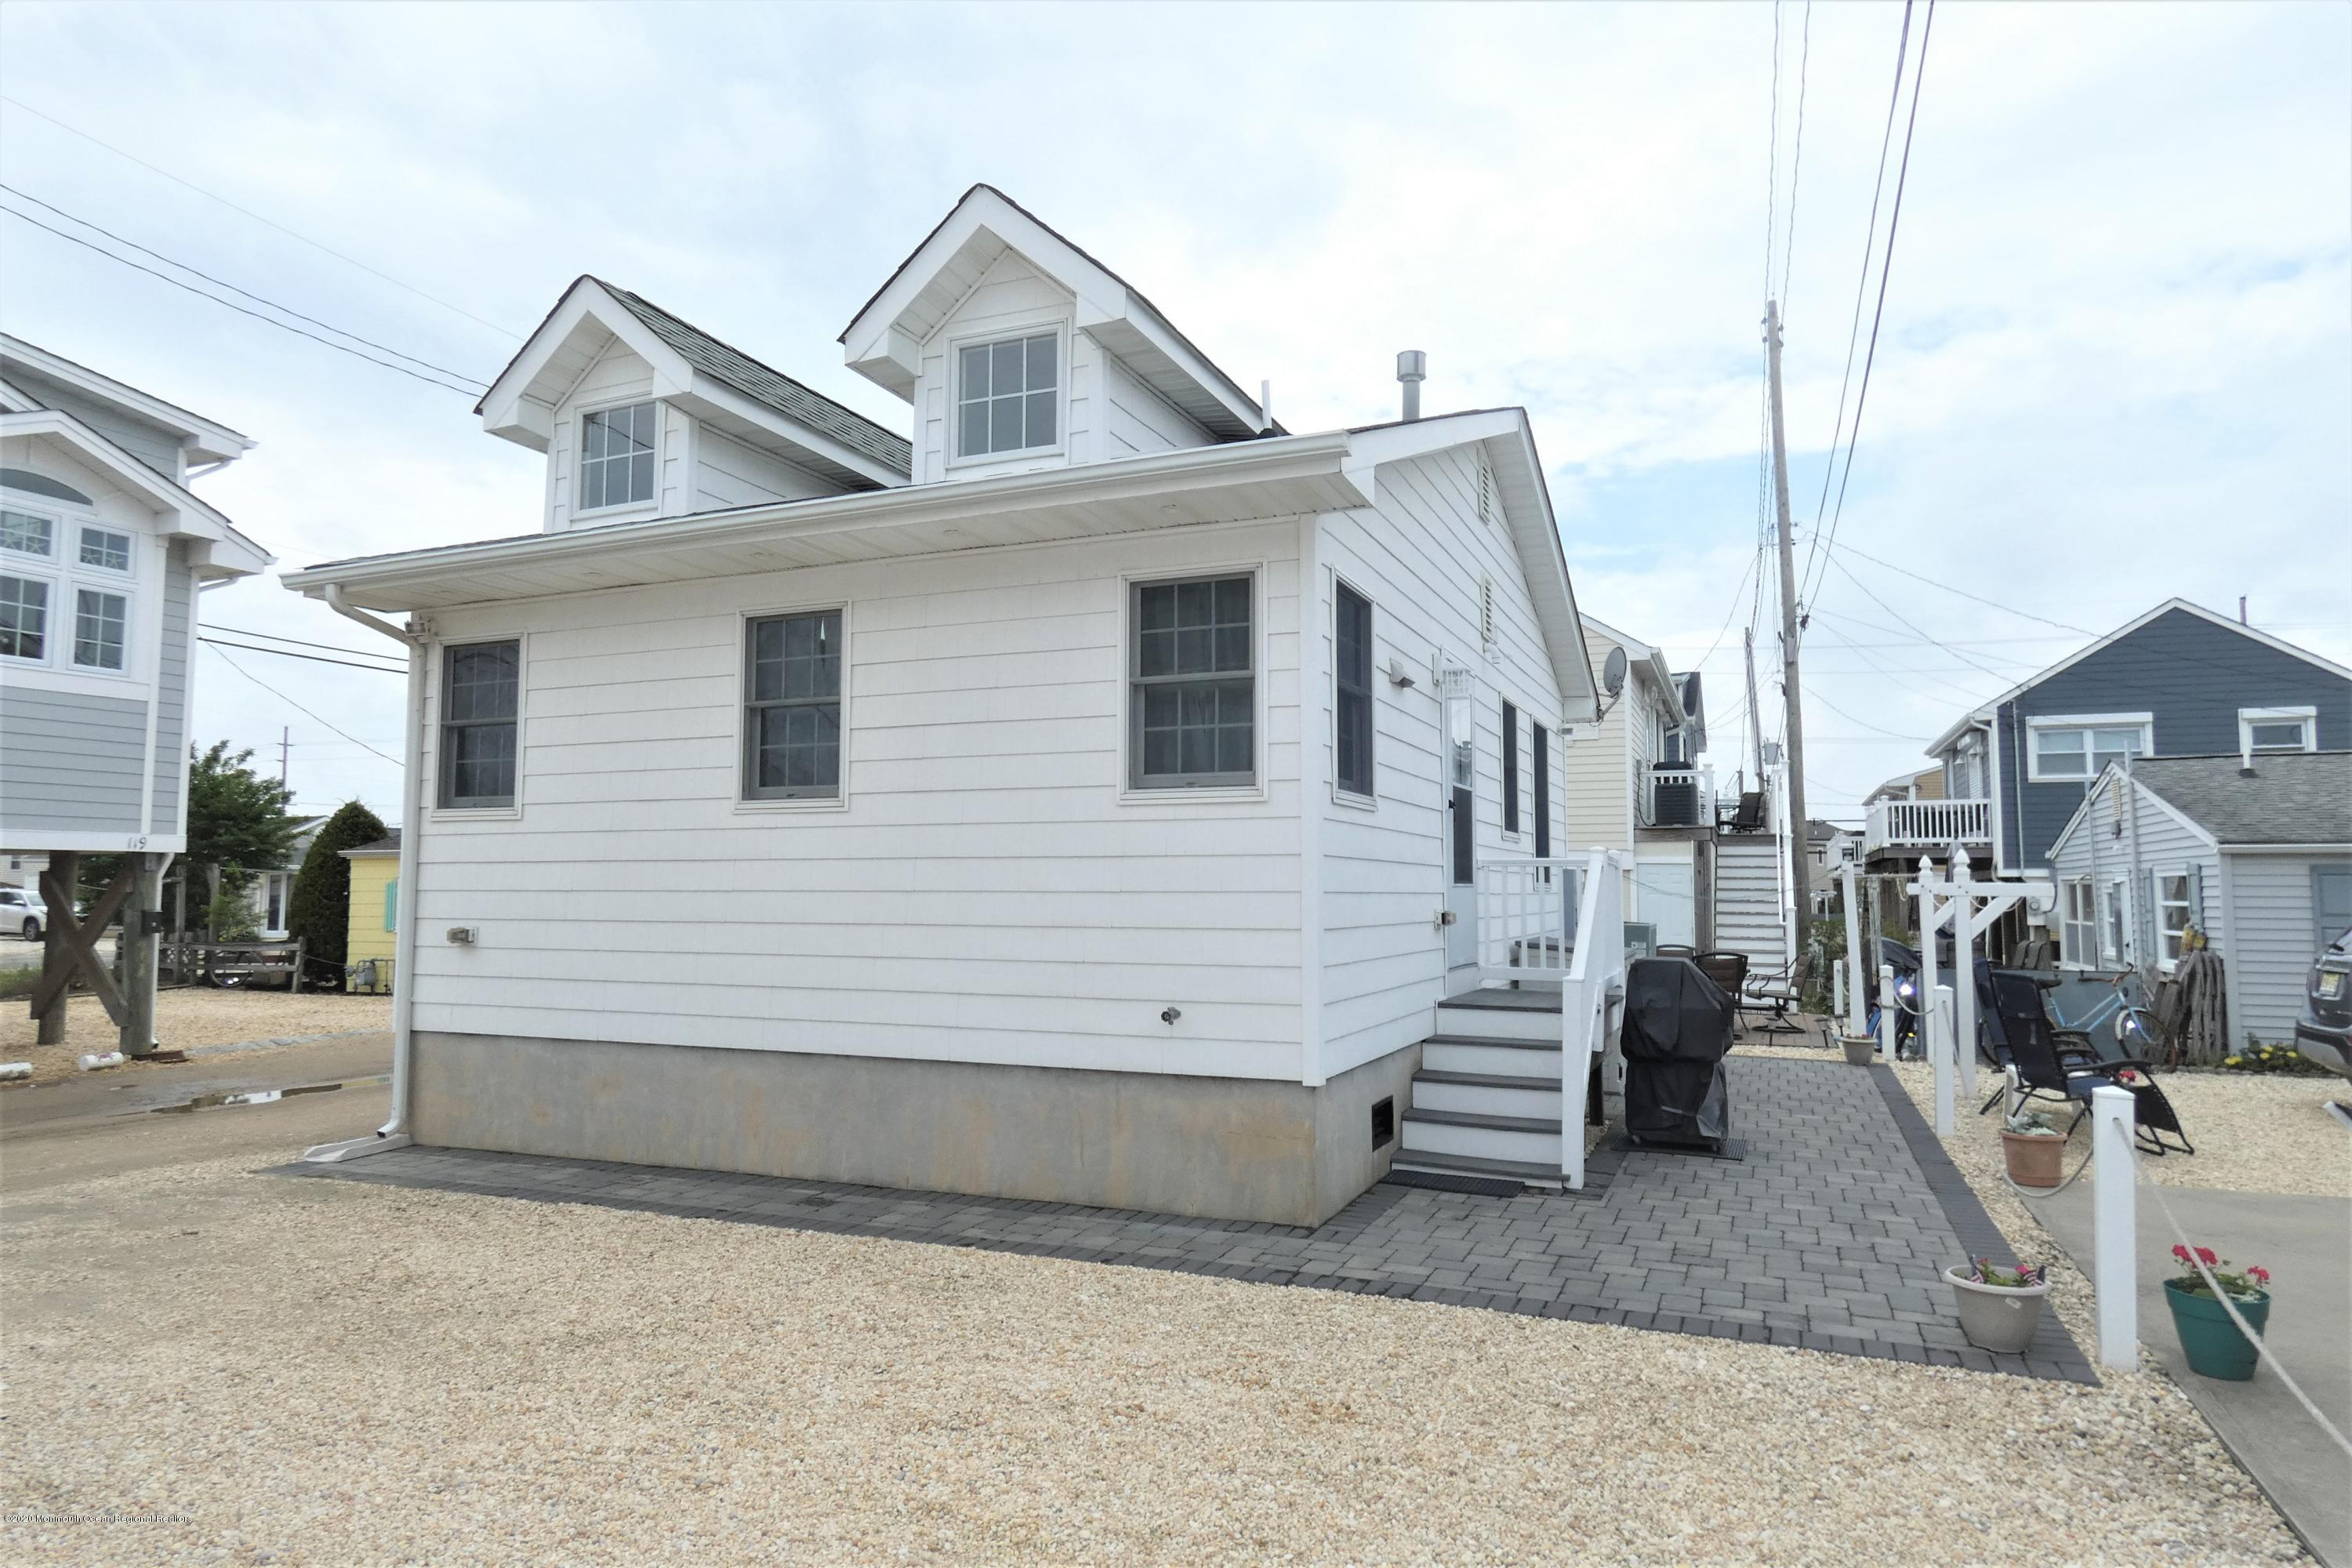 118 W Tarpon Way - Lavallette